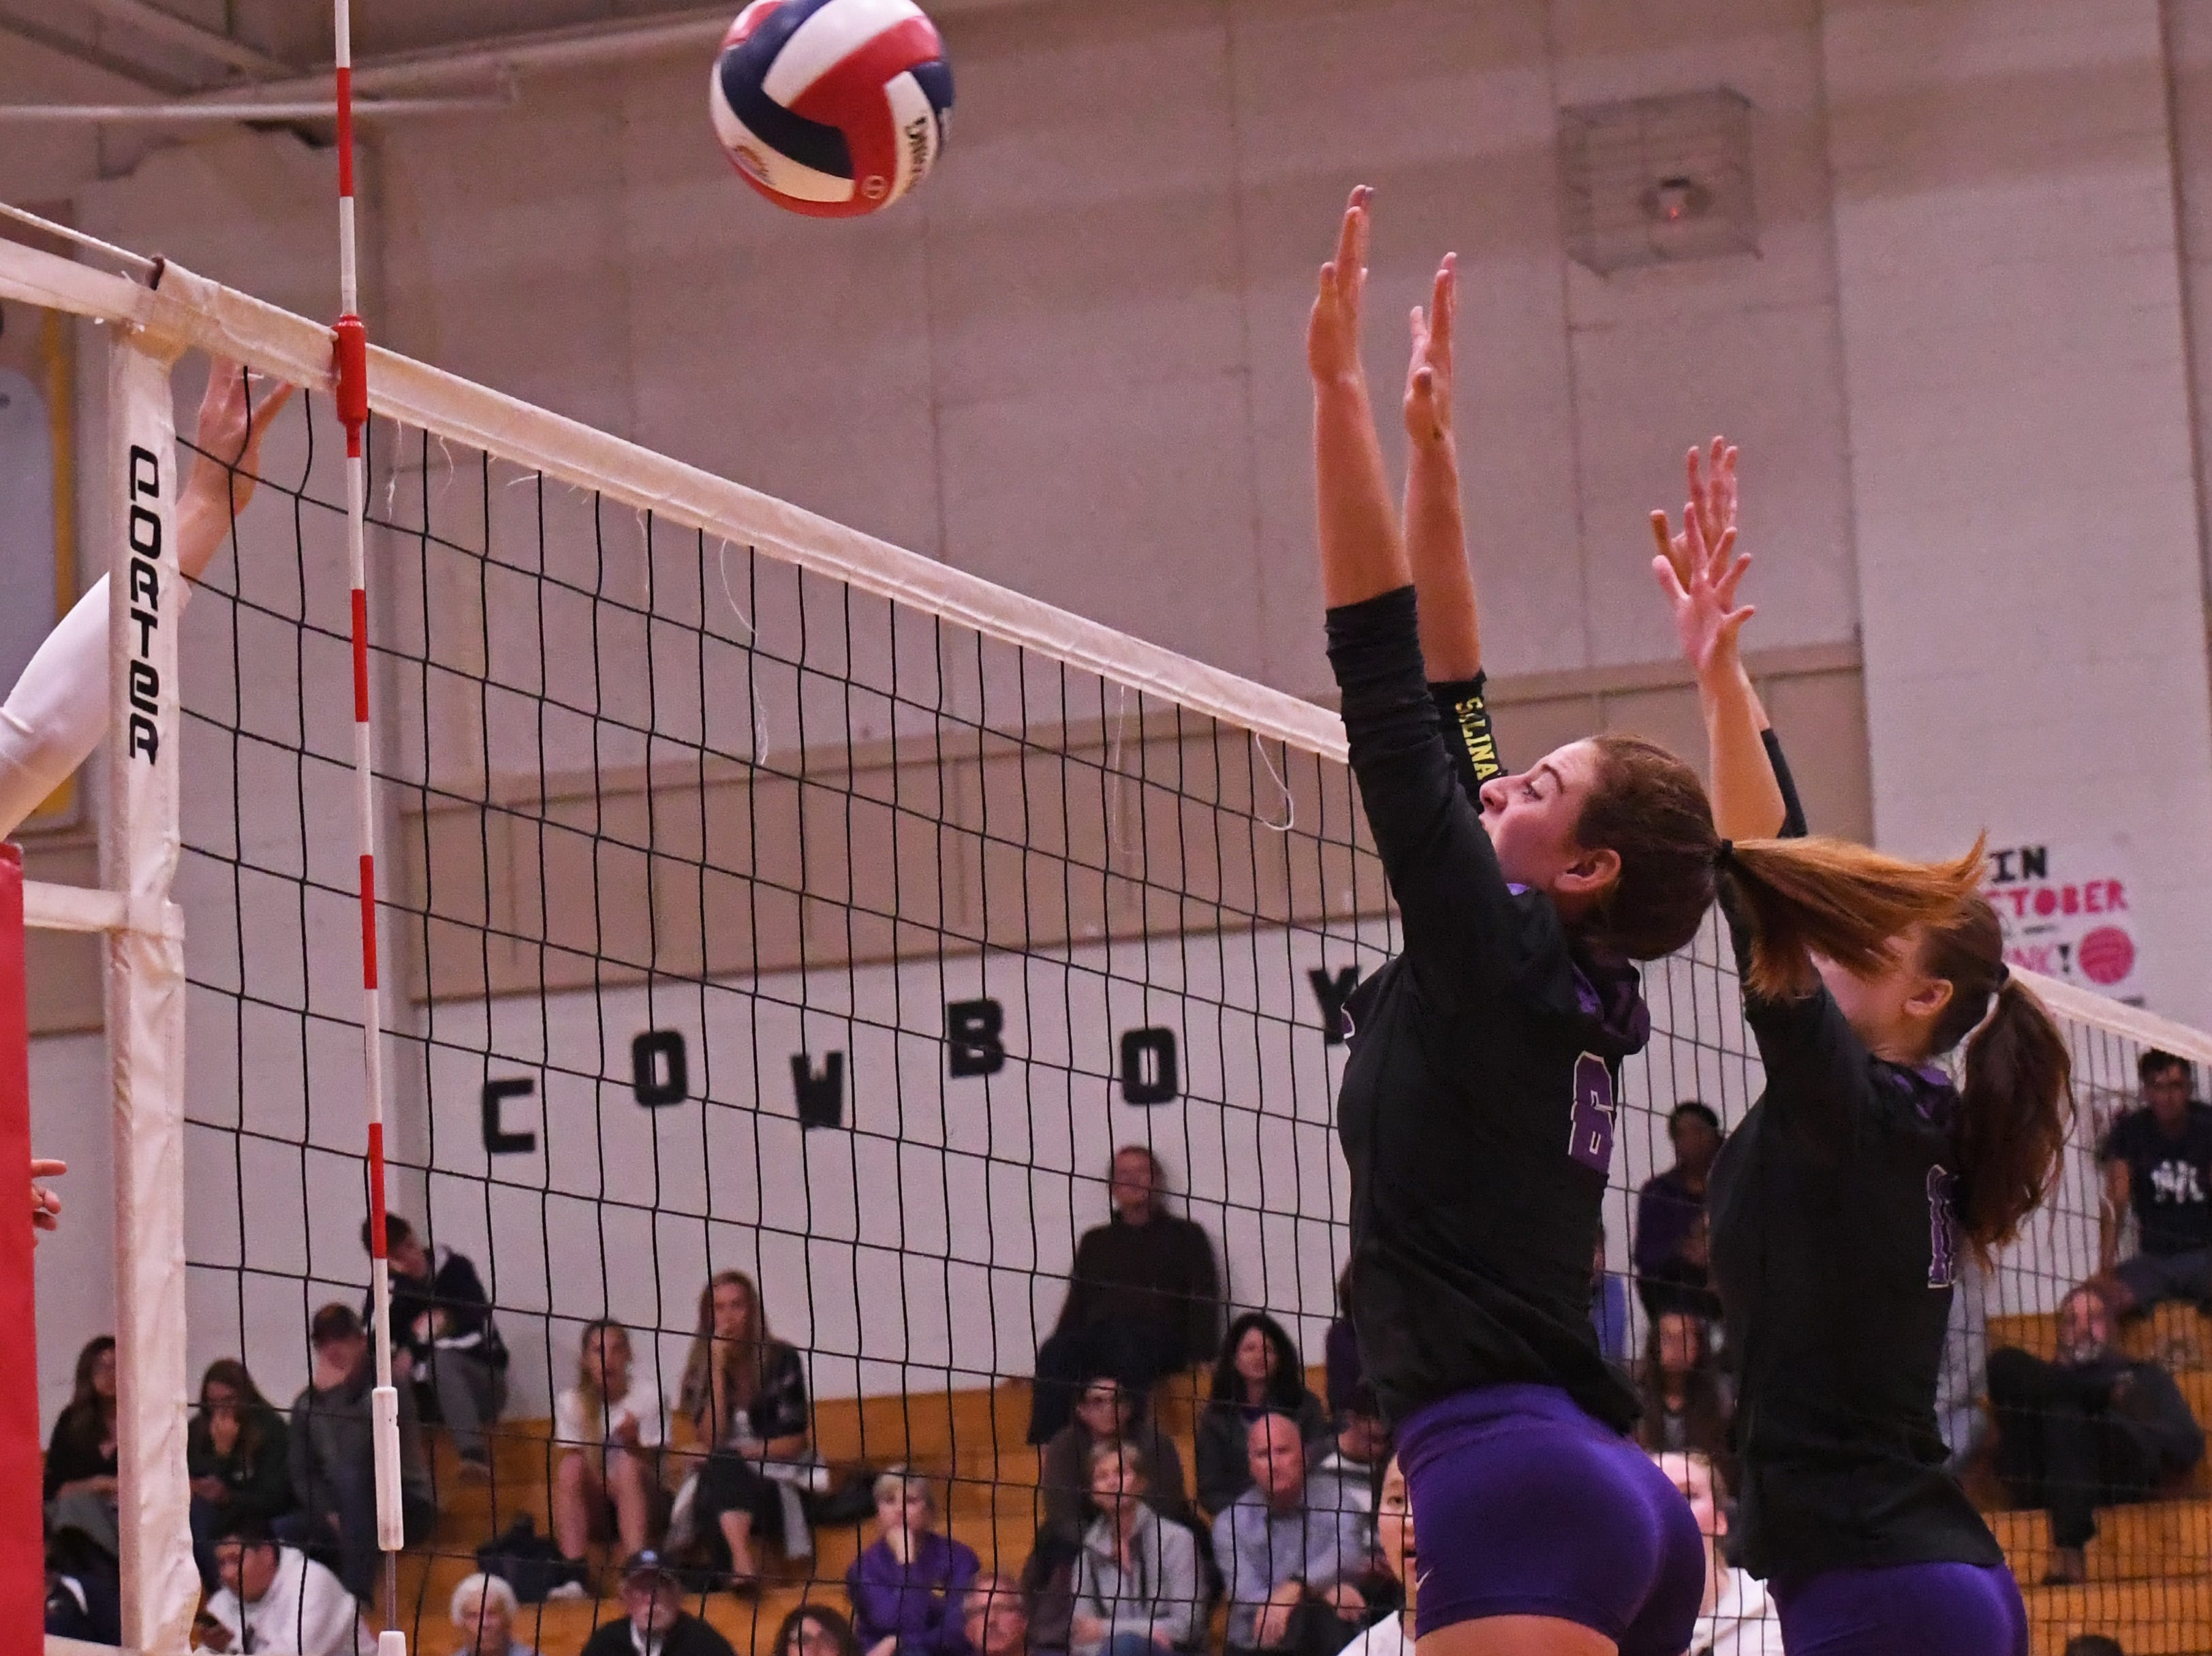 Outside hitter Kylee Moore (6) and middle blocker Savannah Maker (11) reach for the ball in the third set.